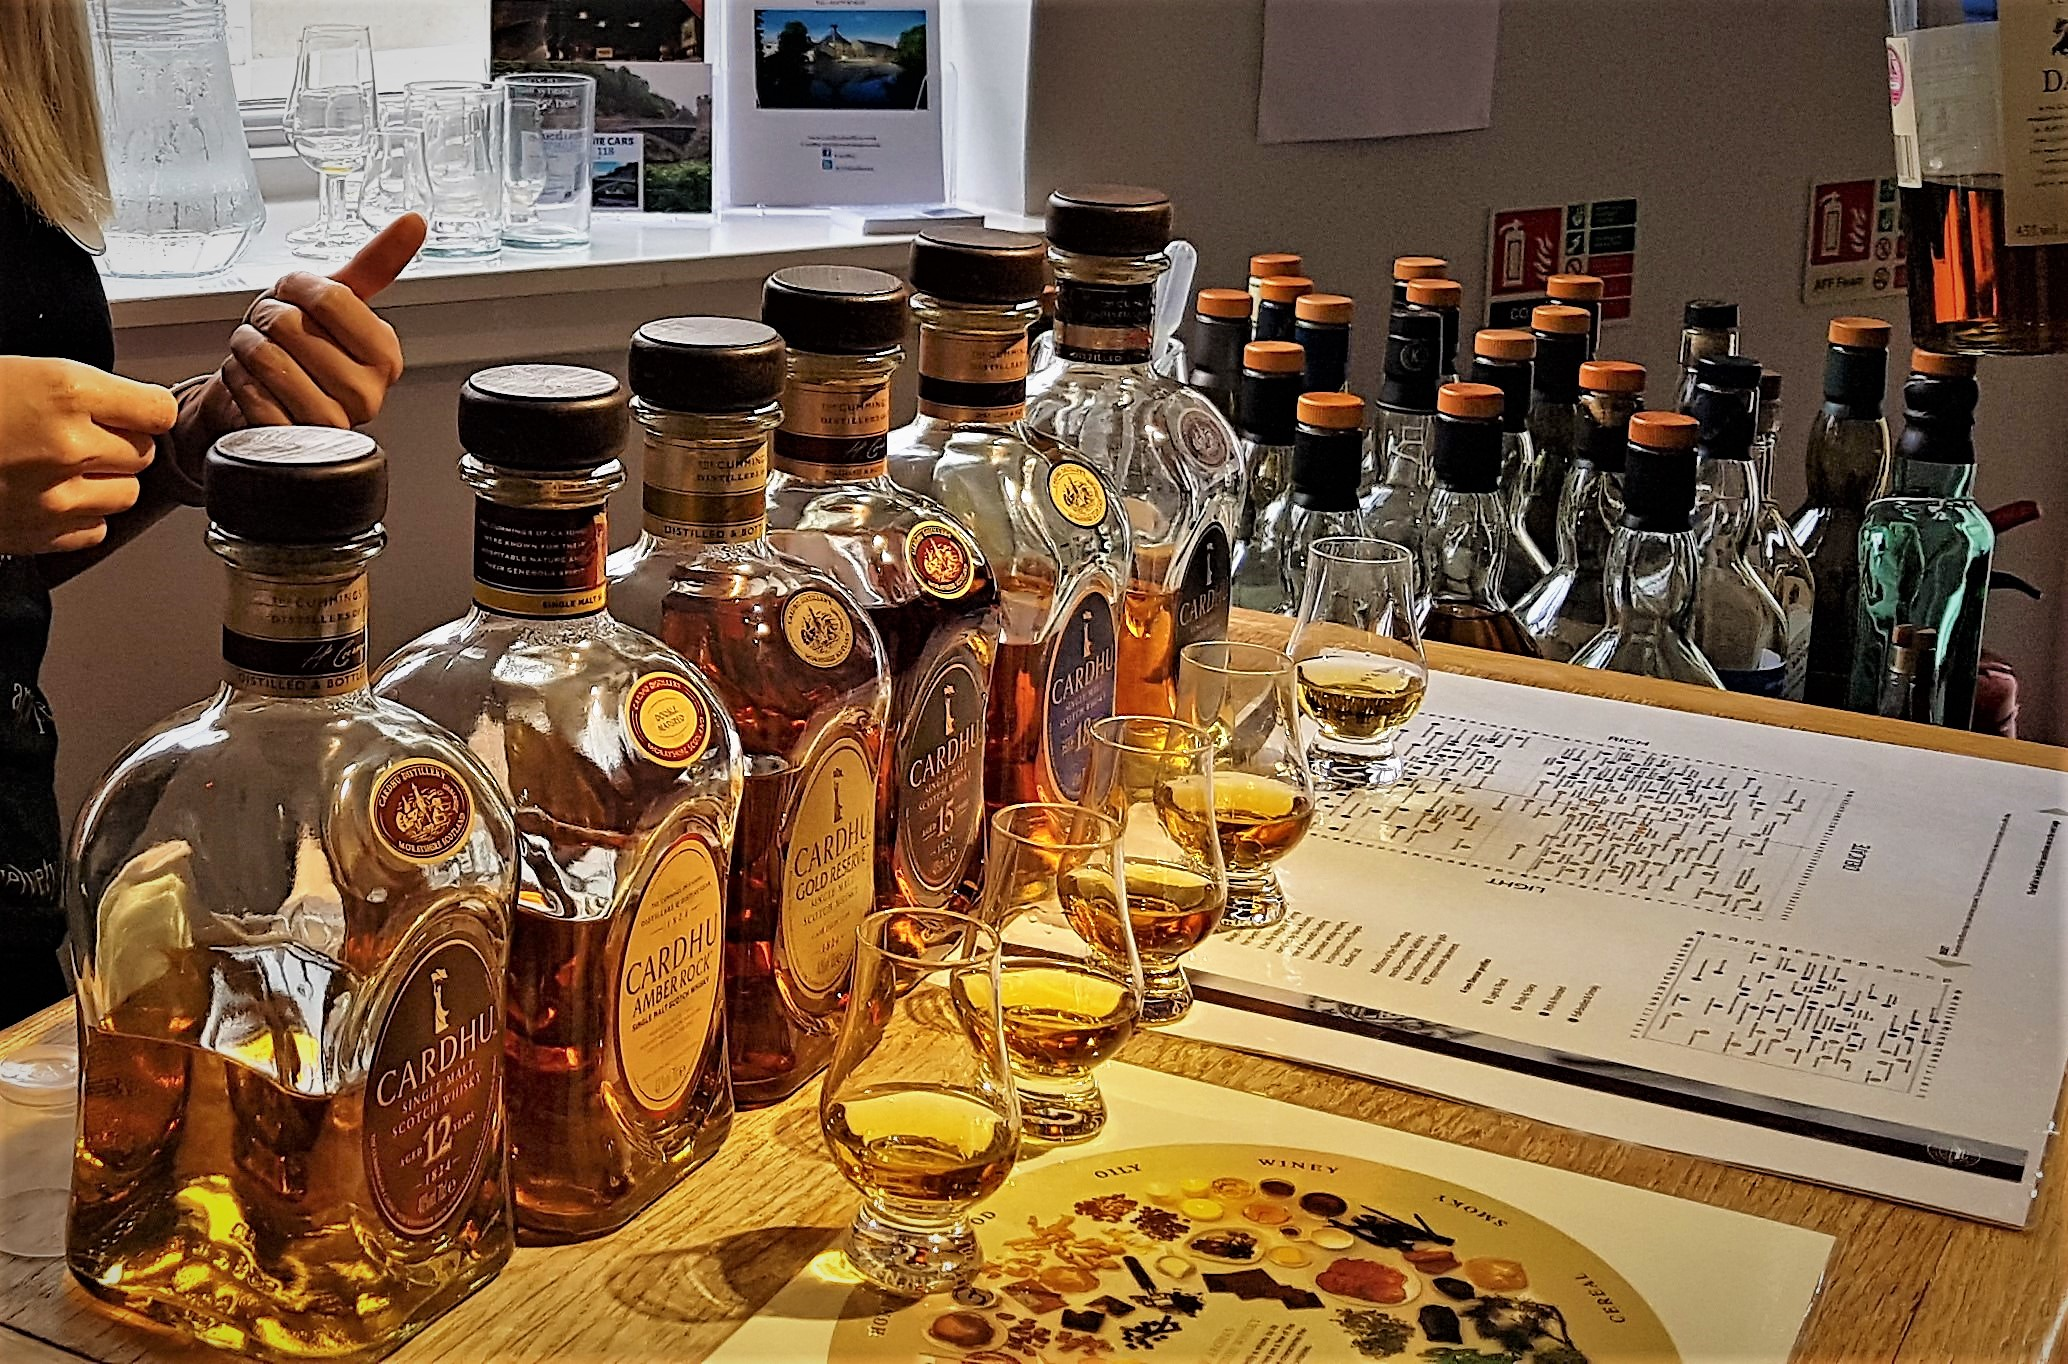 Full Day Whisky Tasting with fantastic views and monuments in English